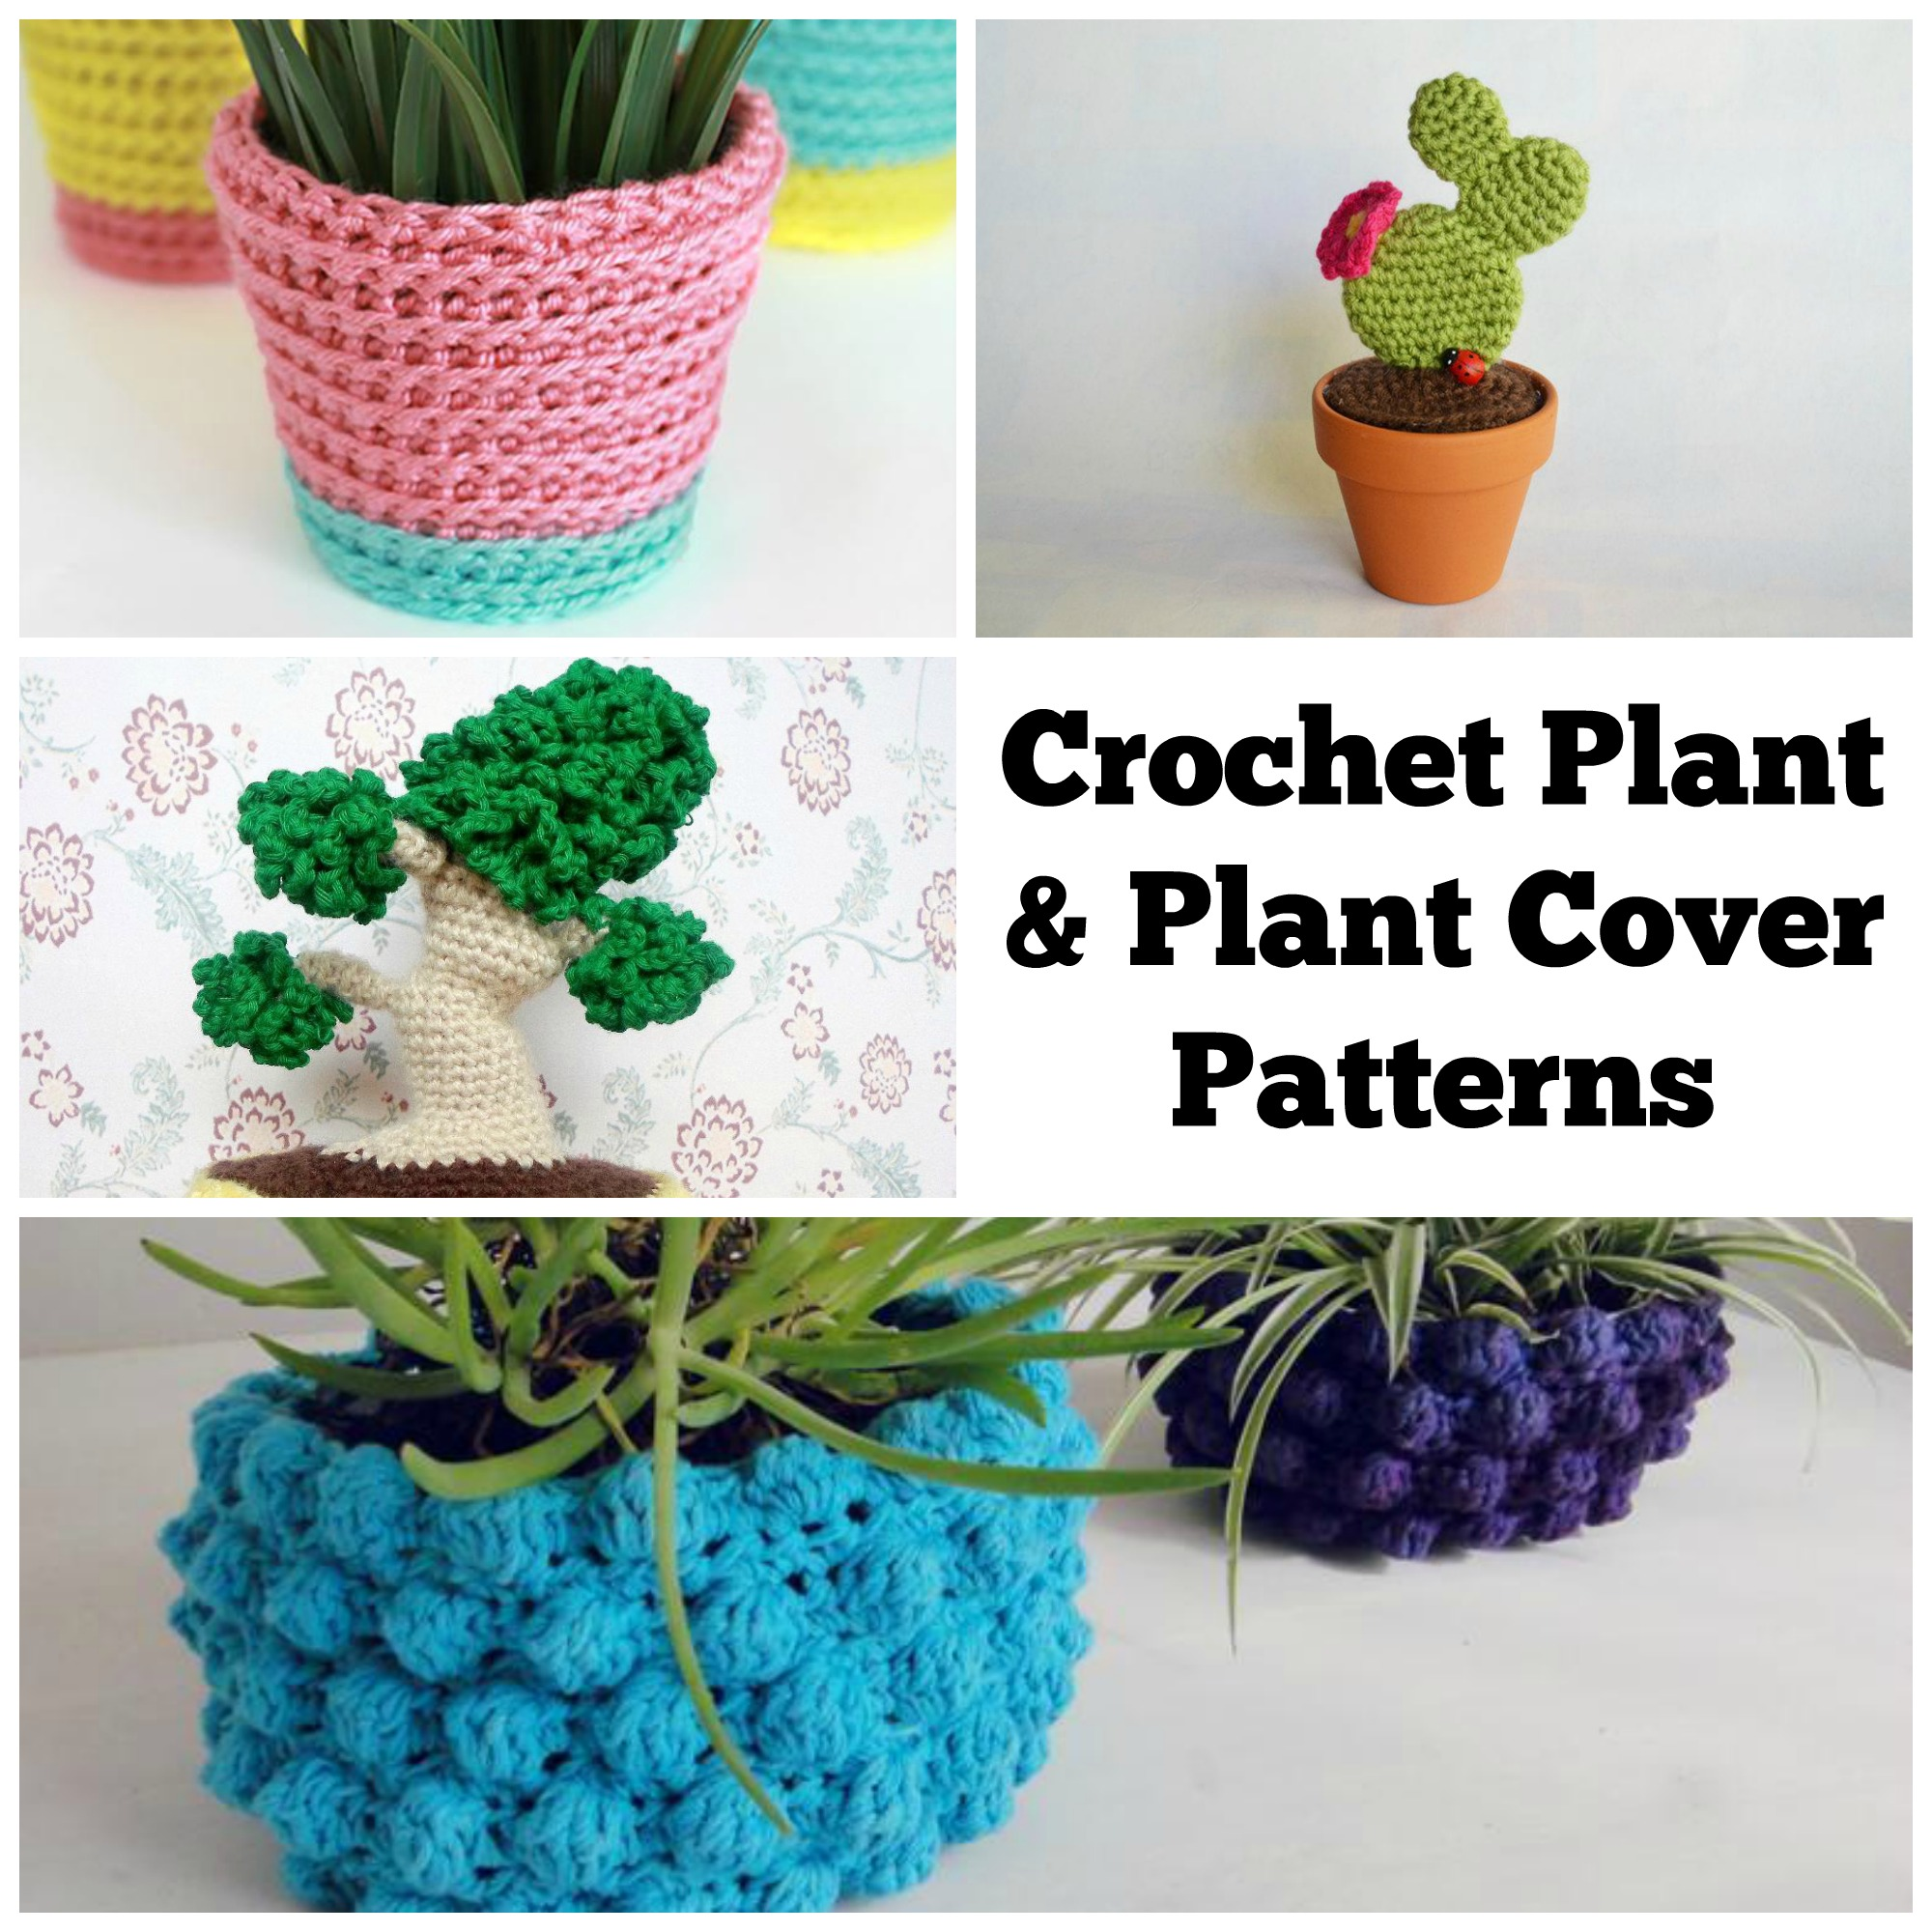 Crochet Plant and Plant Holder Patterns